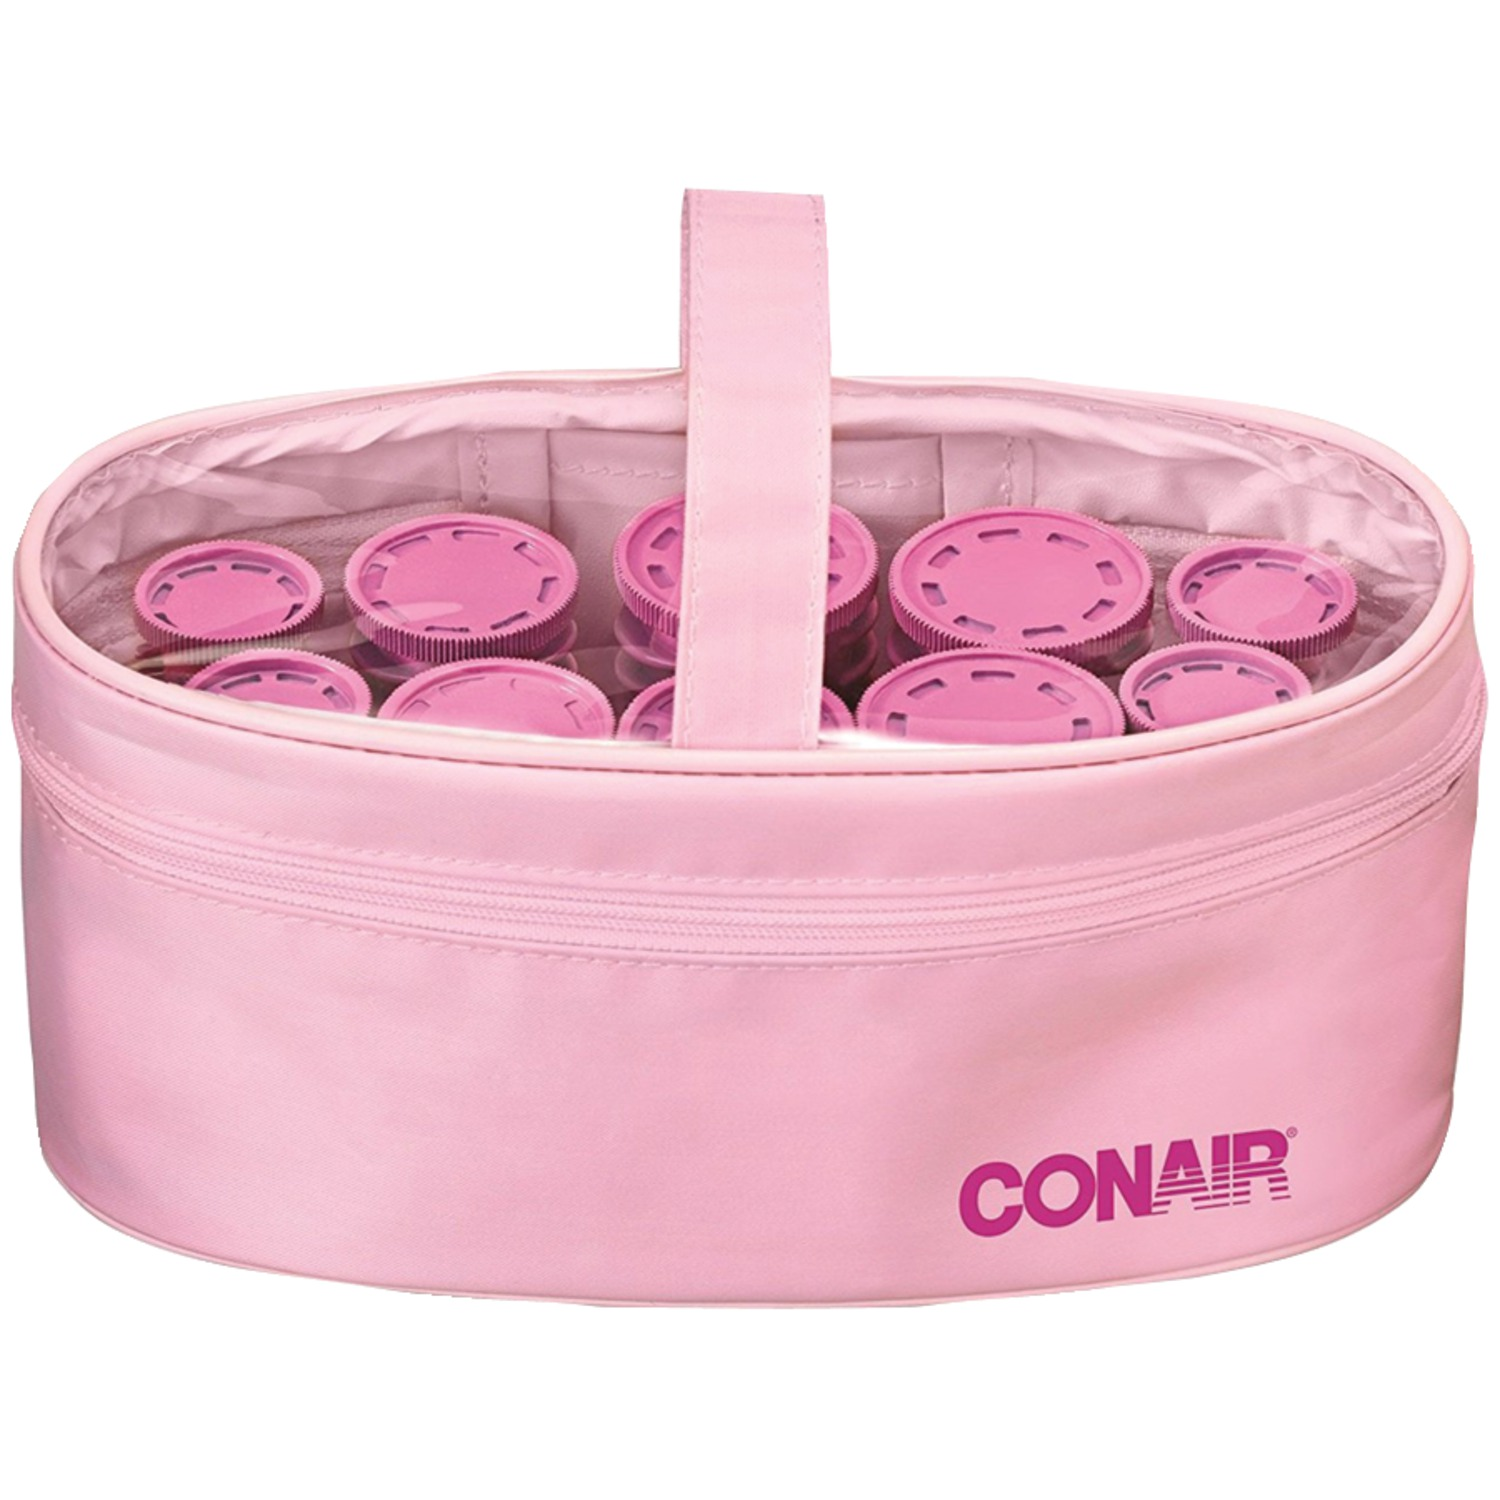 Conair Hs10x Instant Heat Compact Hot Rollers